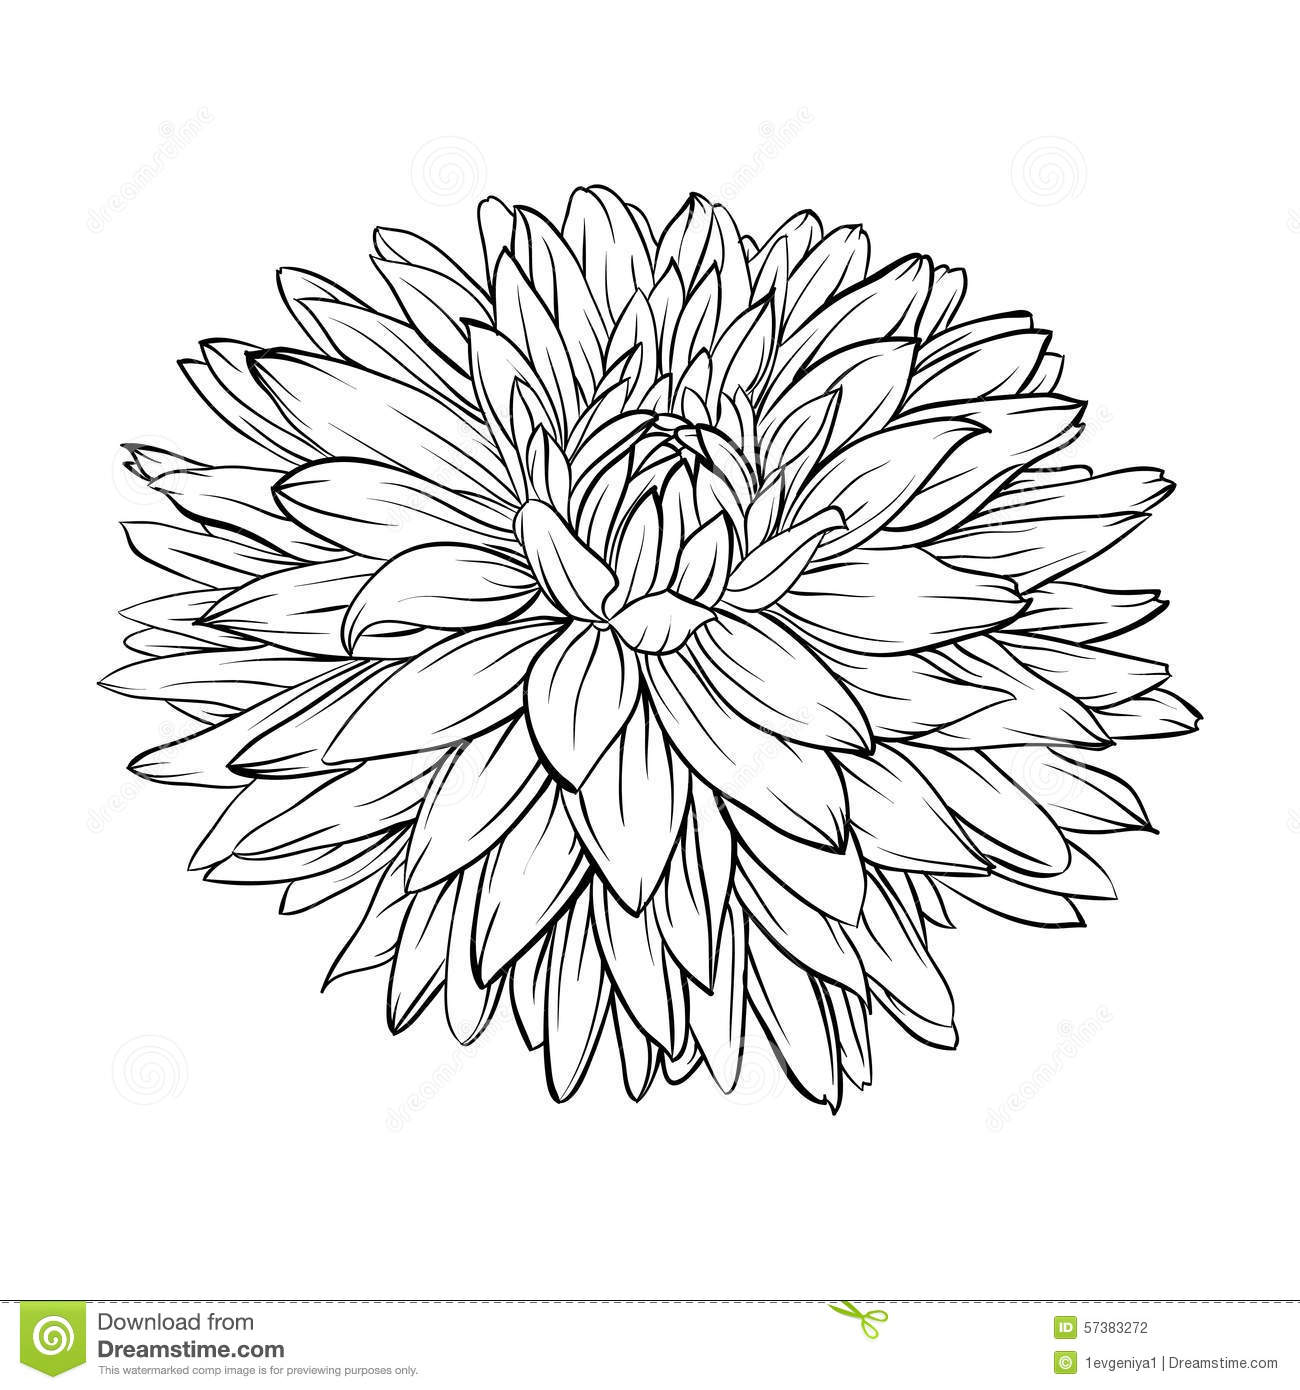 Dahlia Flower Line Drawing : Beautiful monochrome black and white dahlia flower